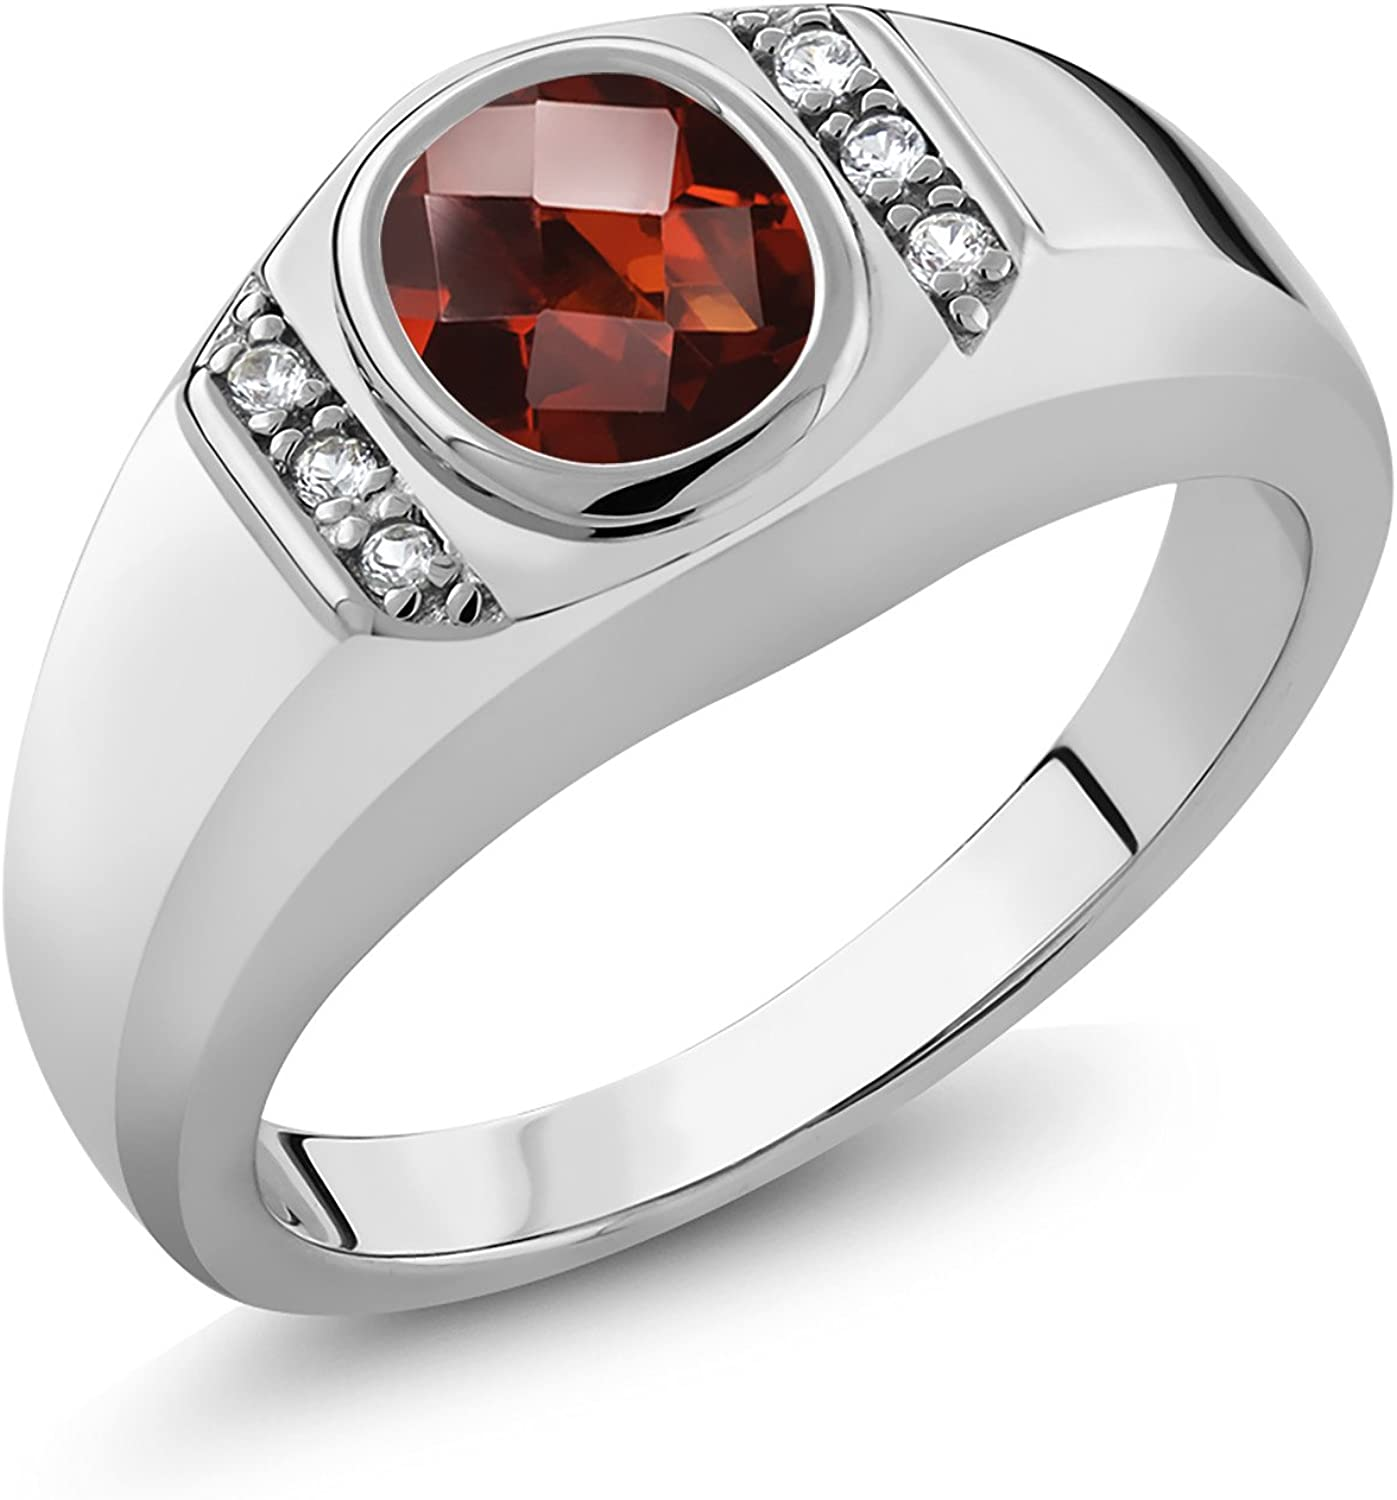 Gem Stone King 1.53 Ct Oval Checkerboard Red Garnet 925 Sterling Silver Mens Ring